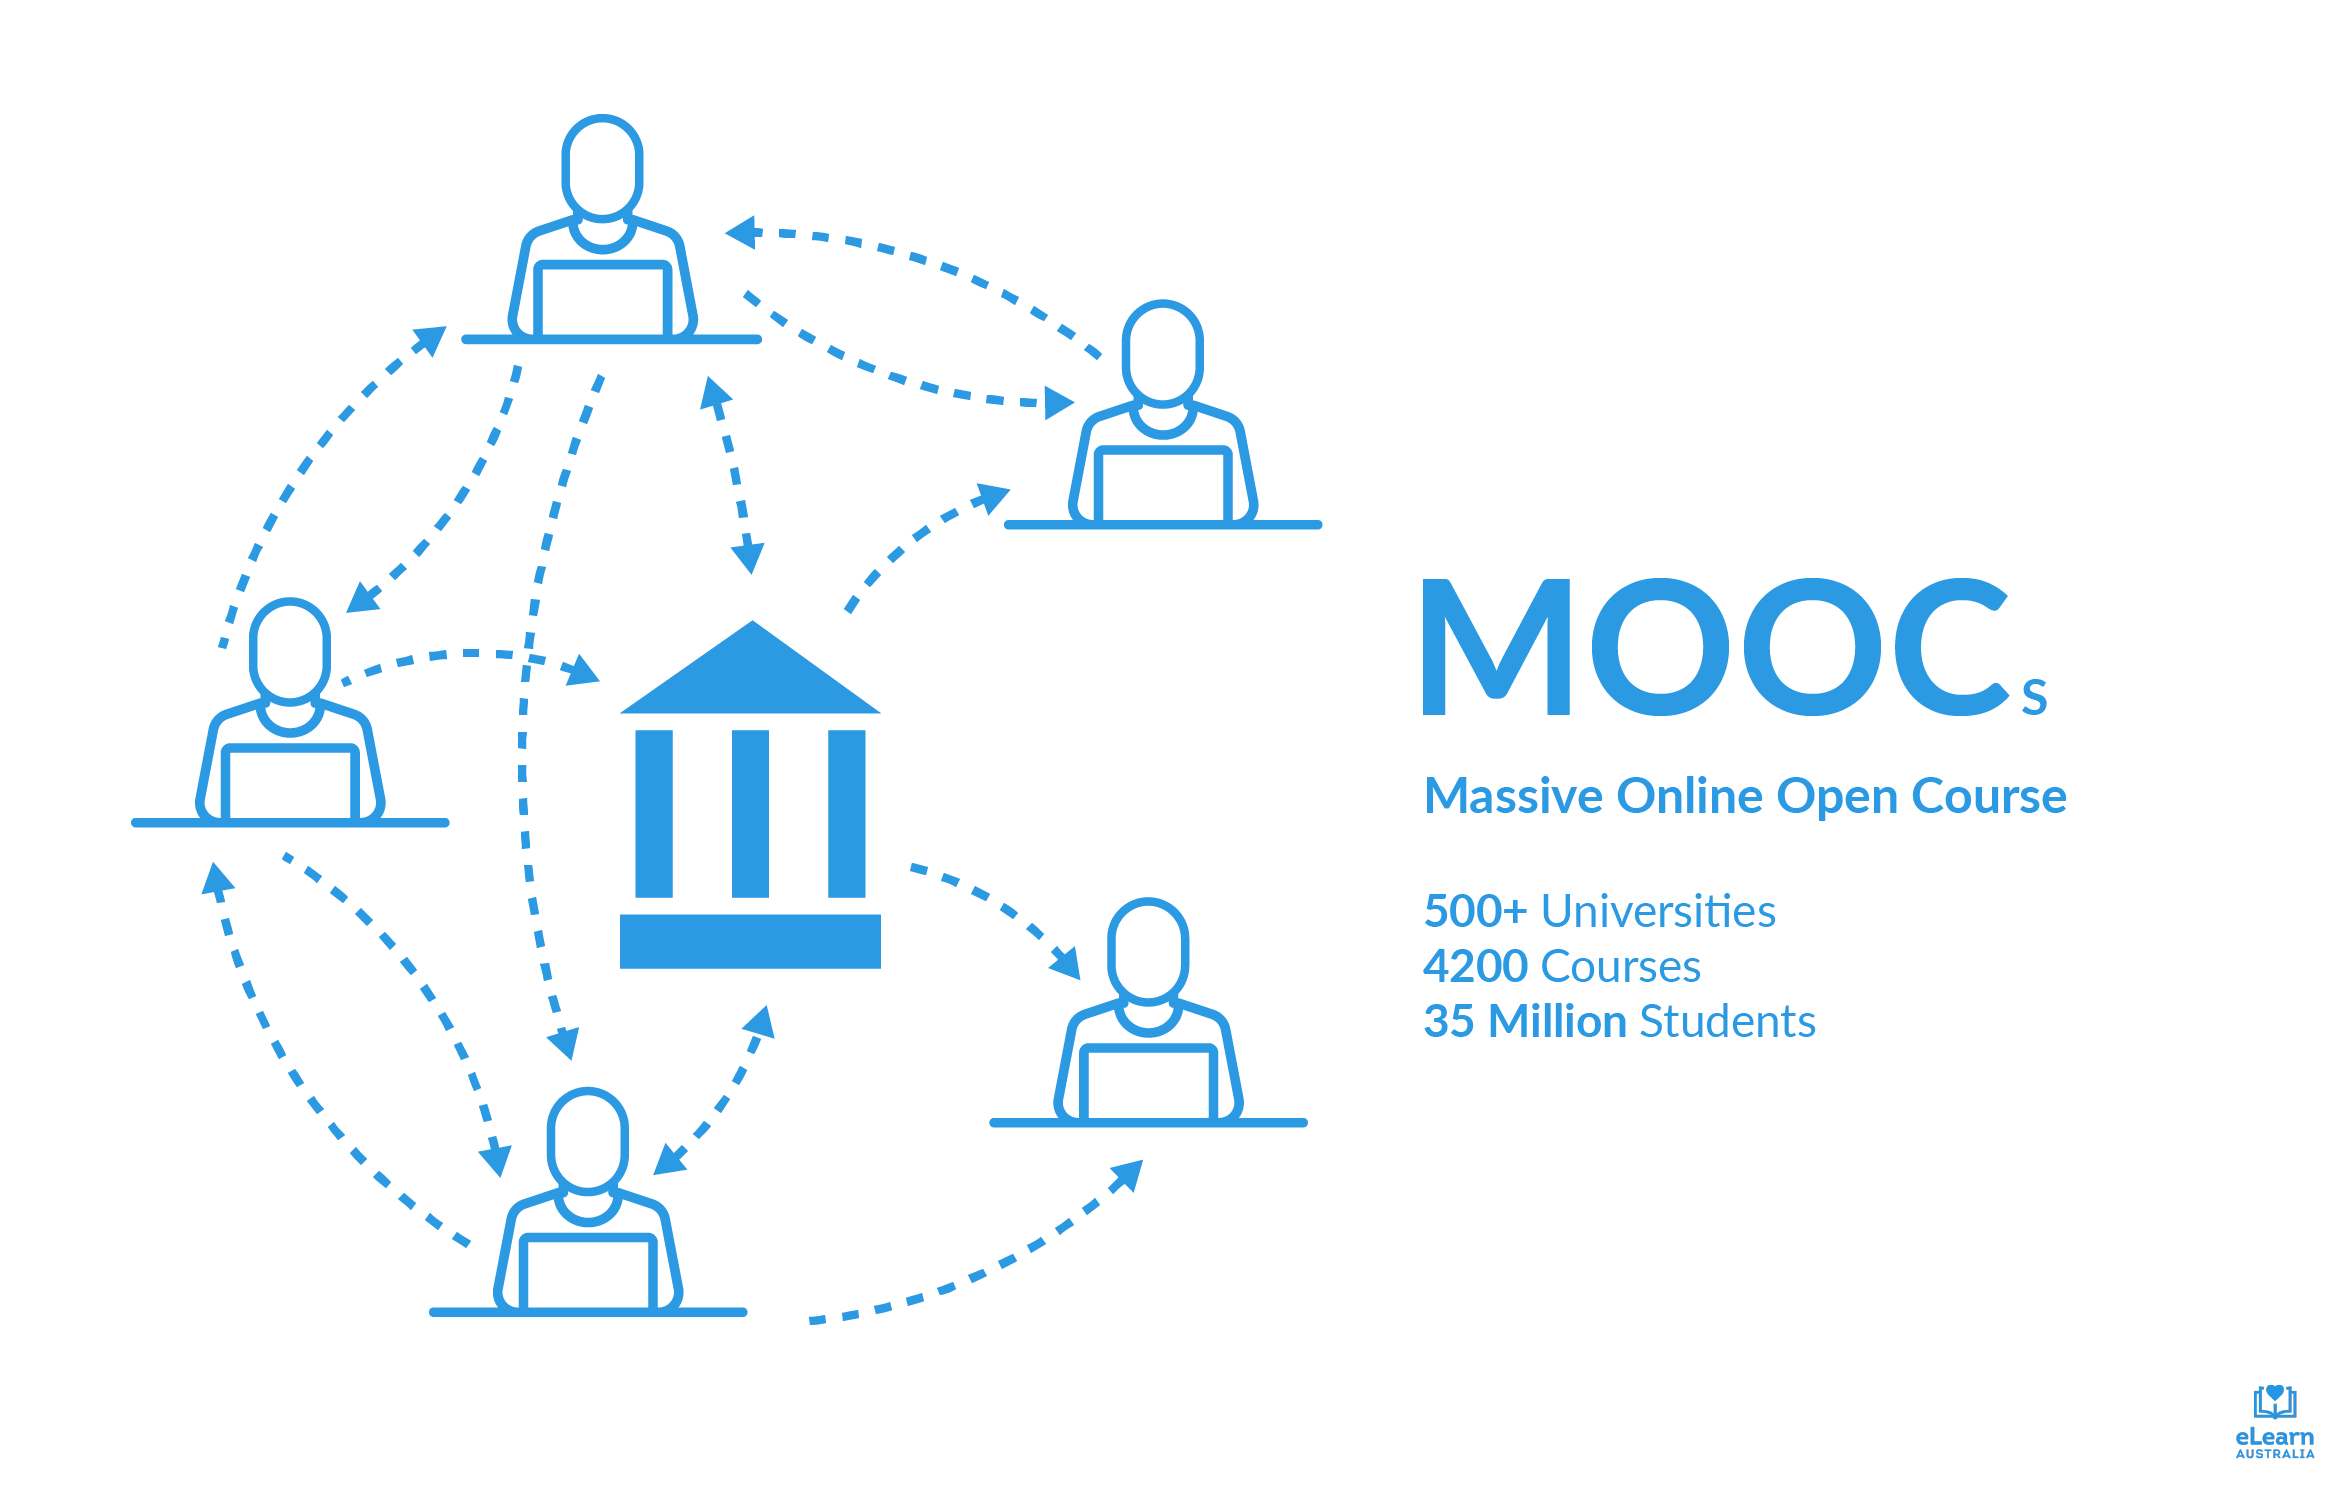 MOOCs (Massive Online Open Course). 4200 Courses from 500+ Universities. 35 million students all connected to each other and the university